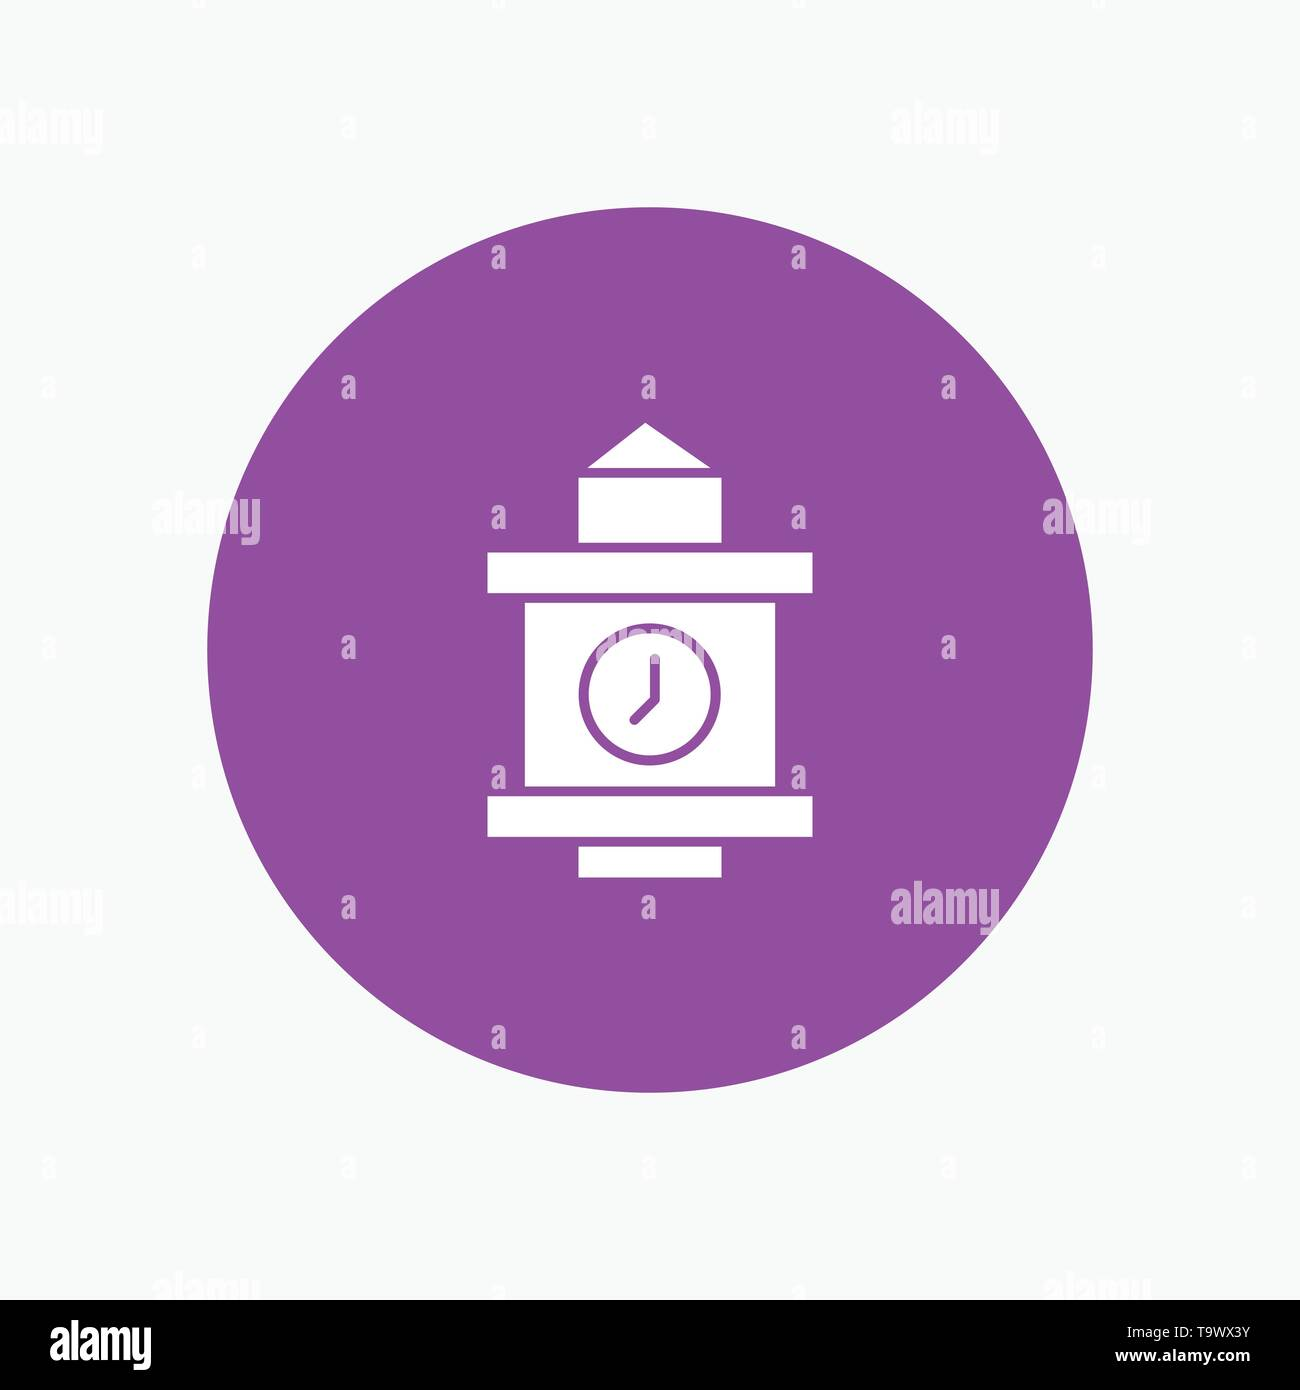 Train, Time, Station - Stock Vector